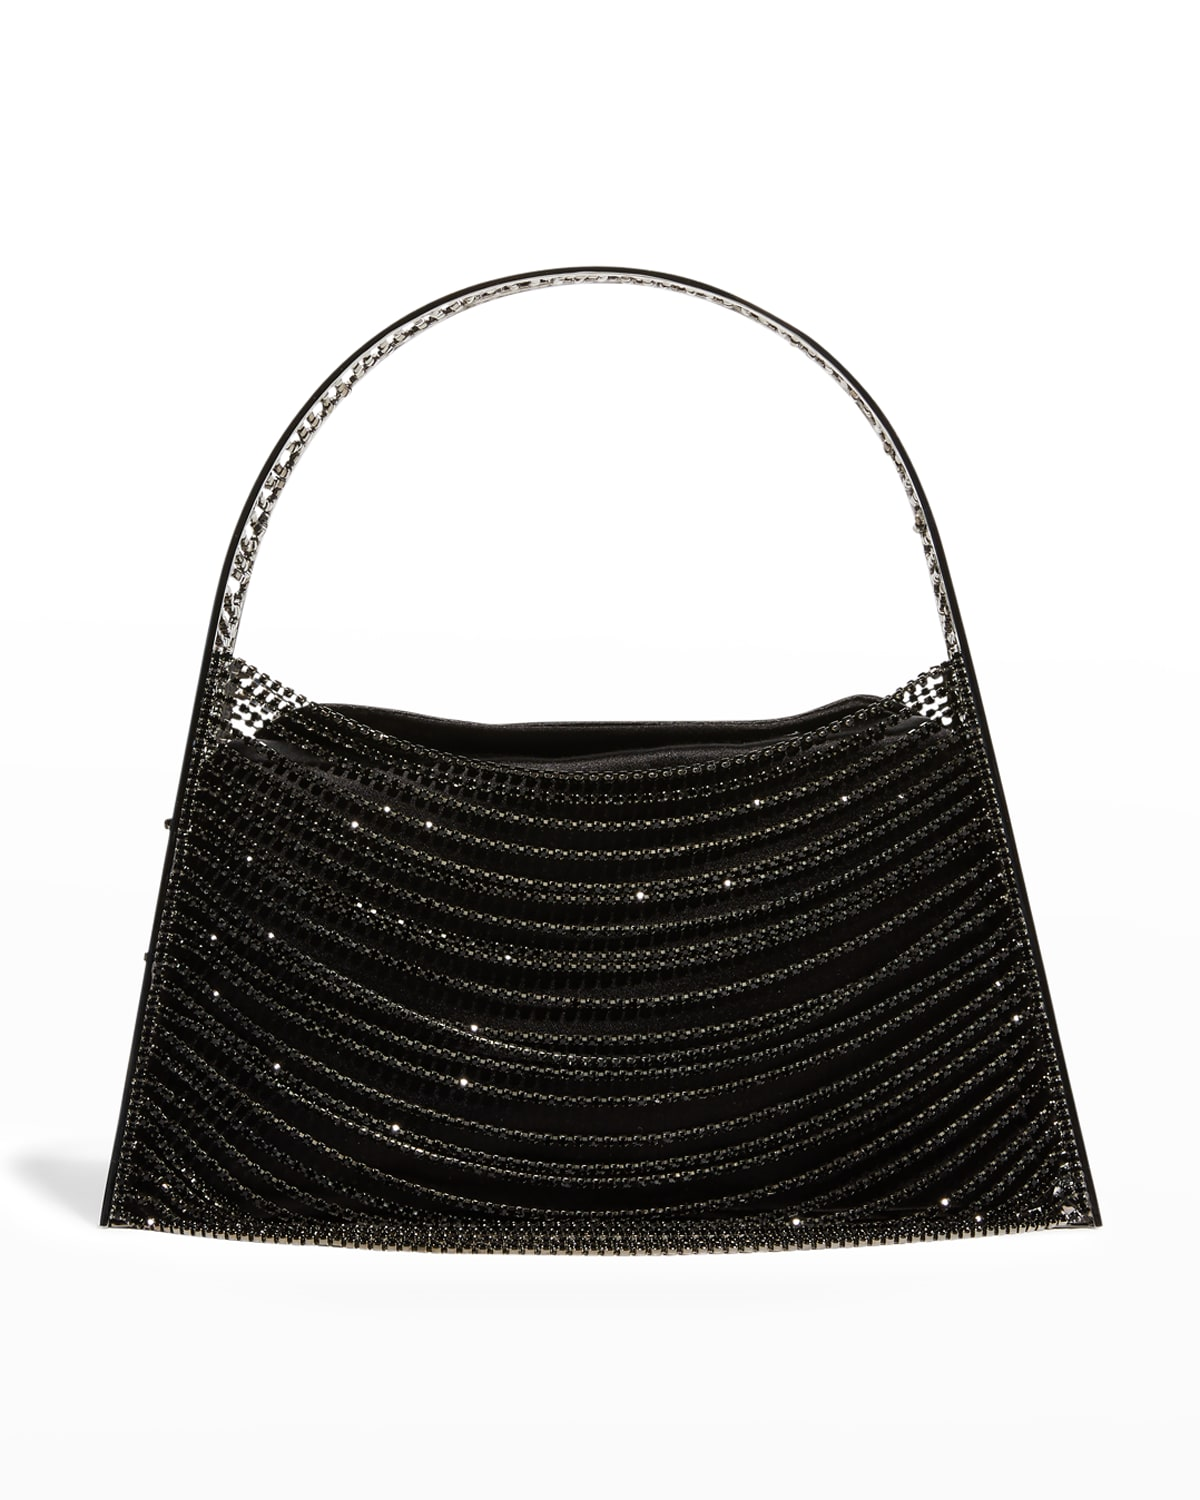 Lucia in the Sky Embellished Top-Handle Bag